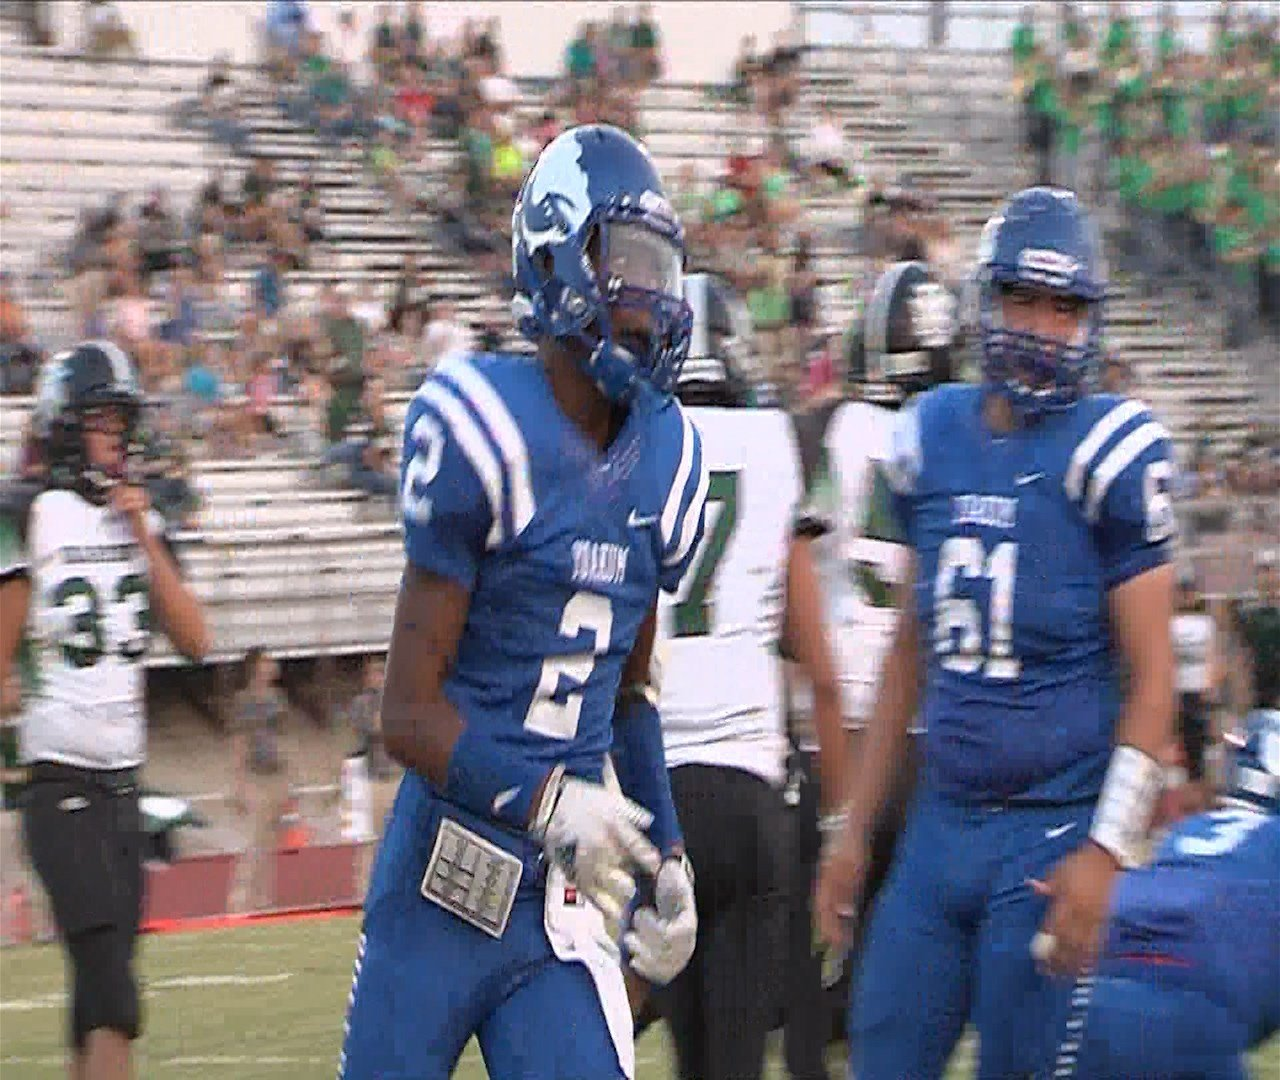 yoakum twins make espn football list crossroads today two area high school football players make the espn junior 300 for the top juniors in the country both play for yoakum and they are twin brothers